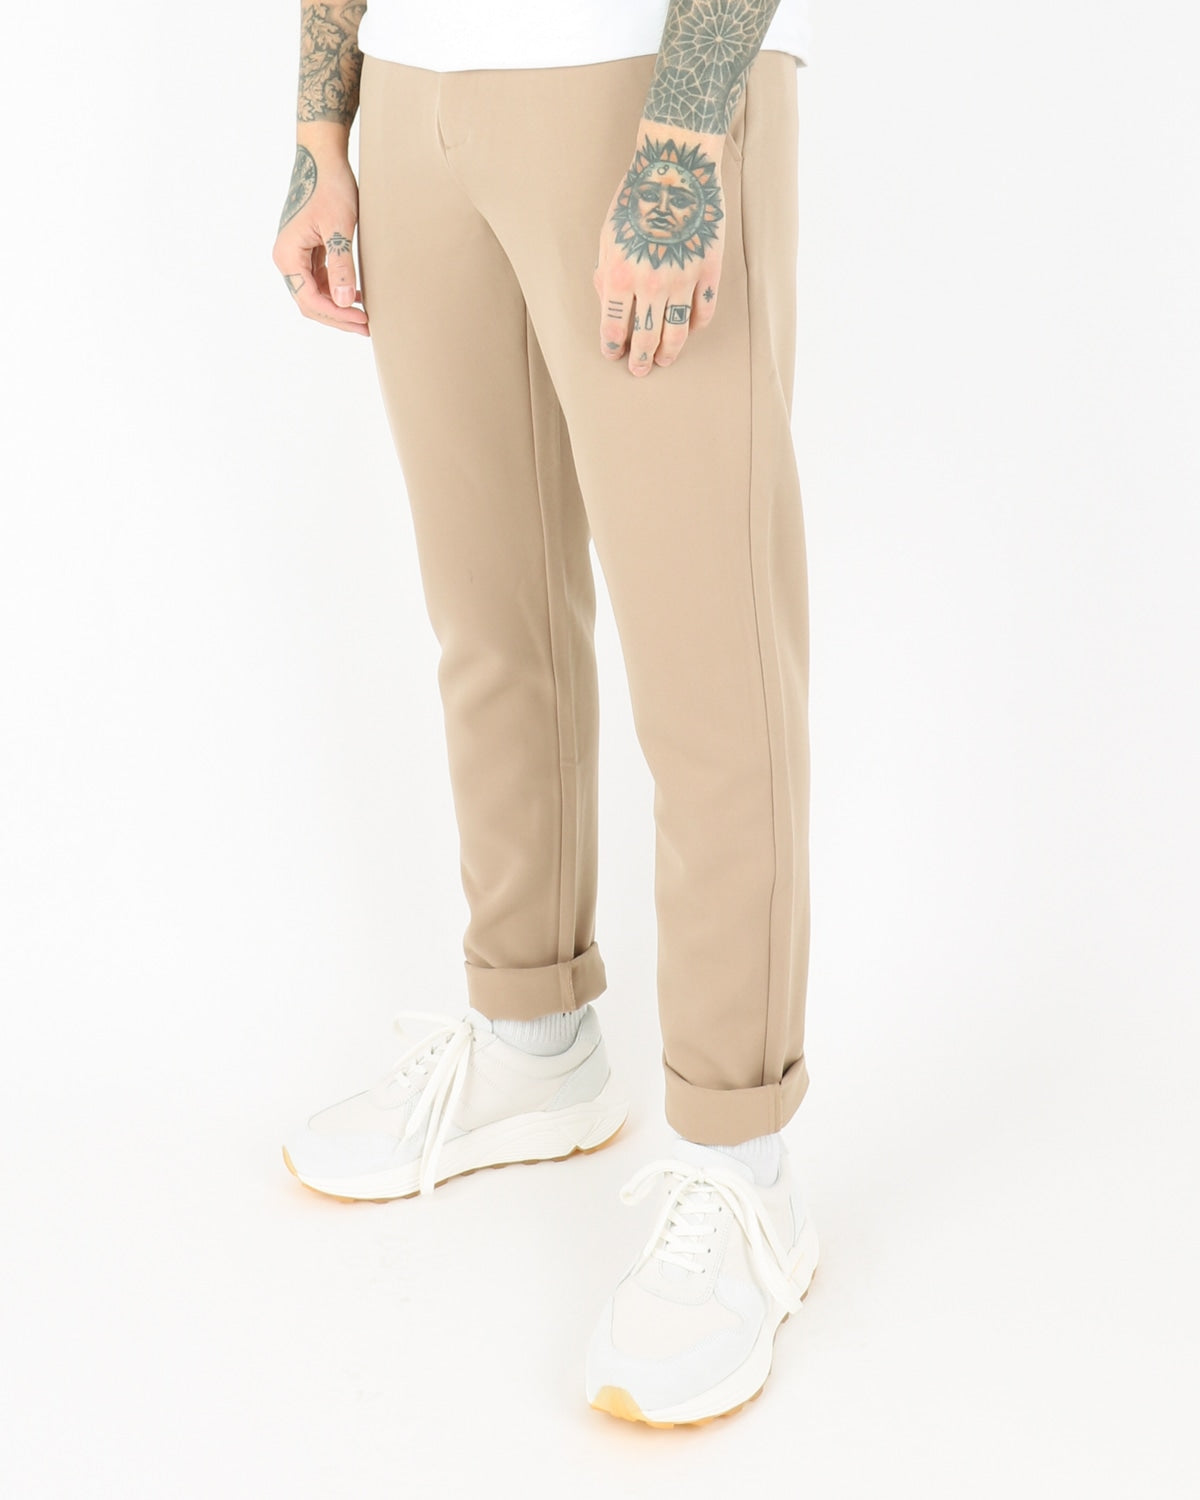 we are copenhagen_janzik pants_khaki_view_2_2